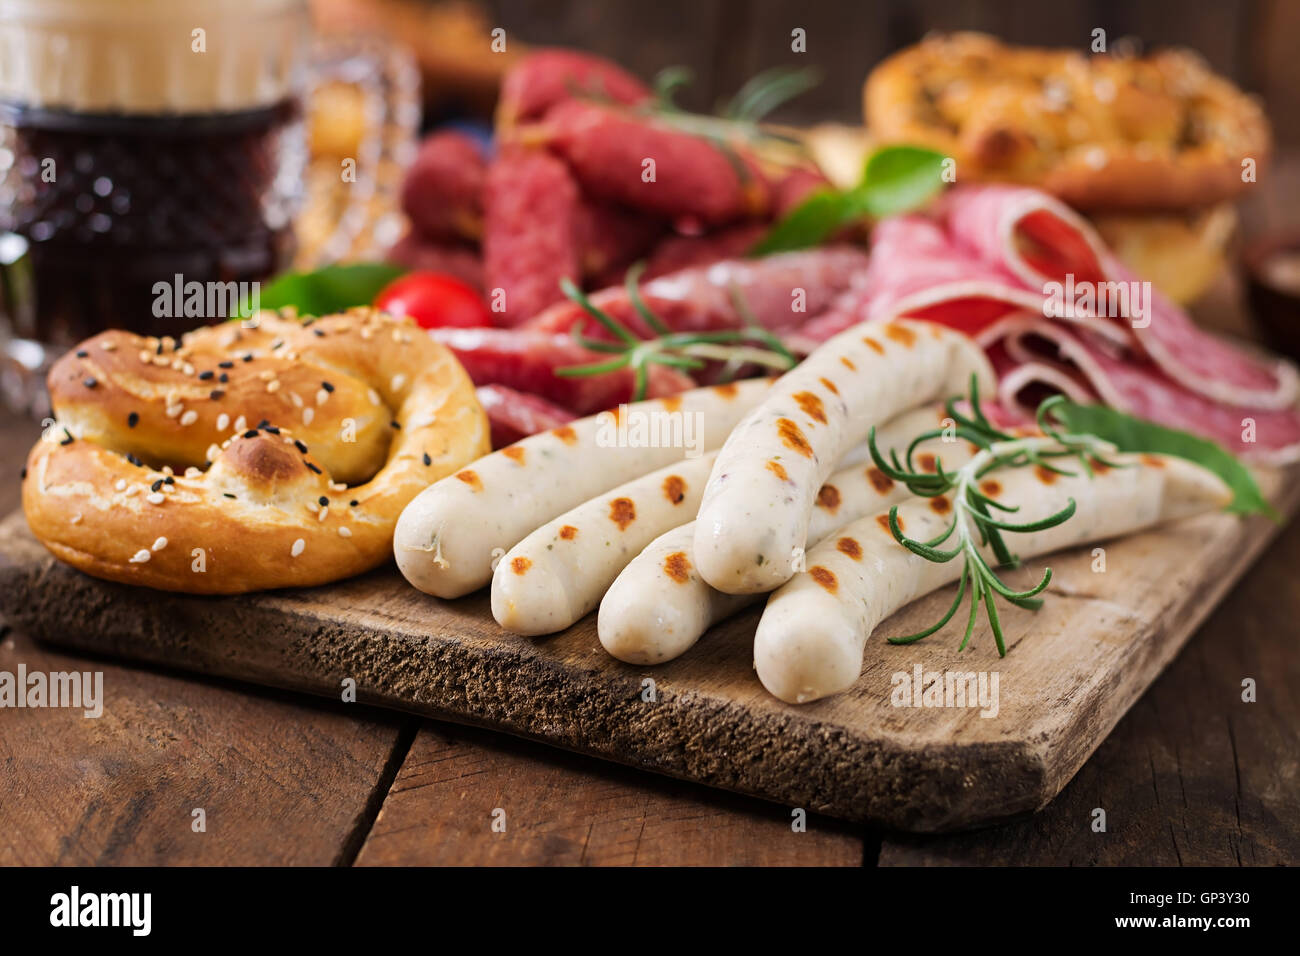 Glass of beer, pretzels and various sausages on wooden background. Oktoberfest. Stock Photo